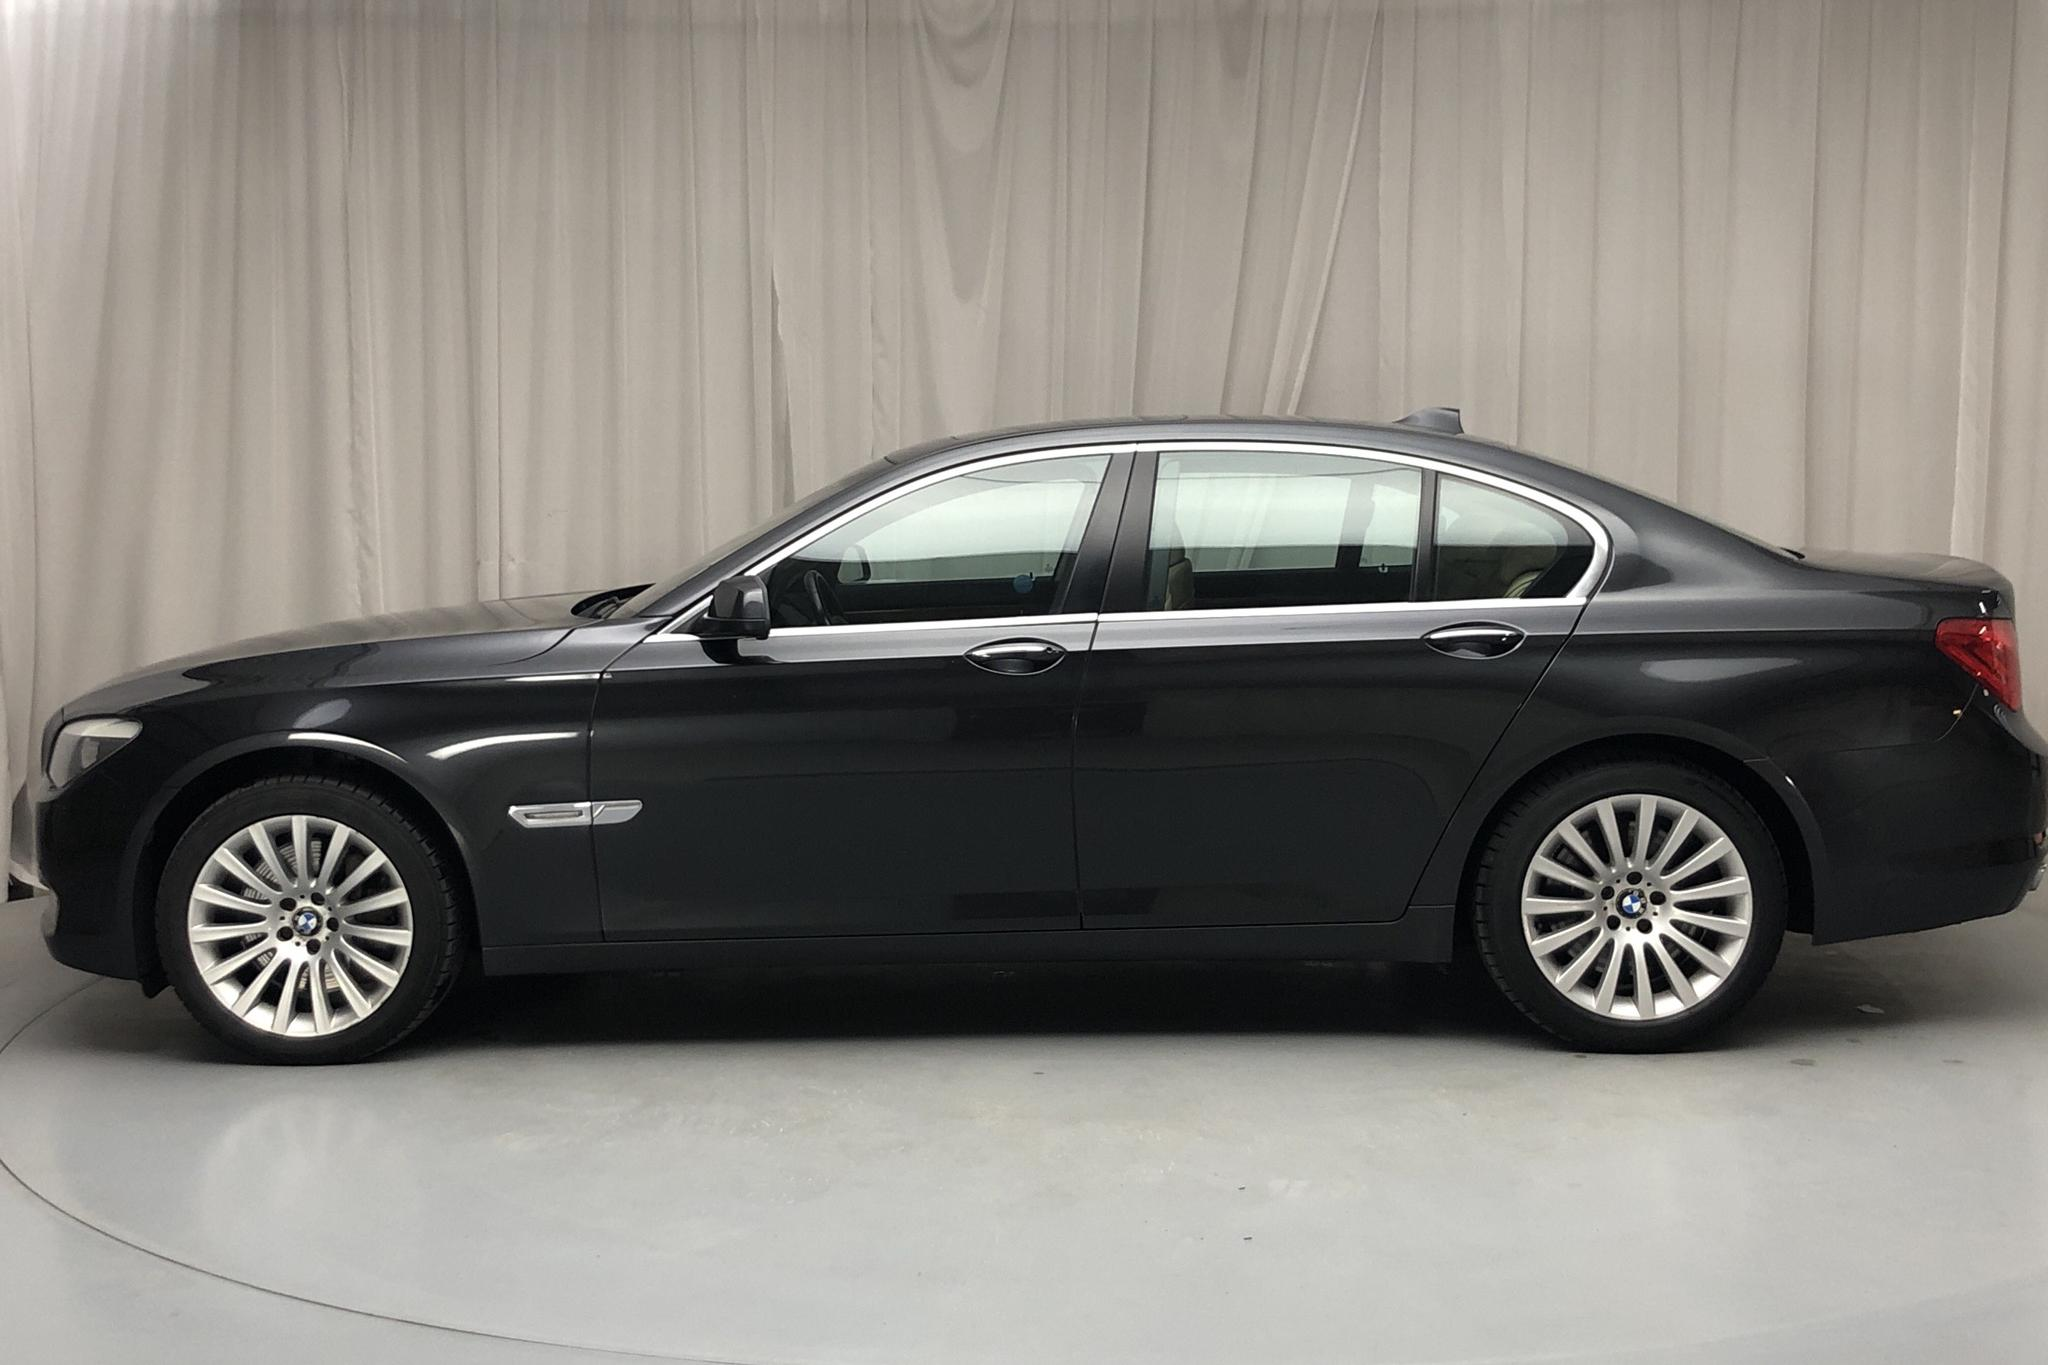 BMW 750i Sedan, F01 (407hk) - 173 970 km - Automatic - black - 2009